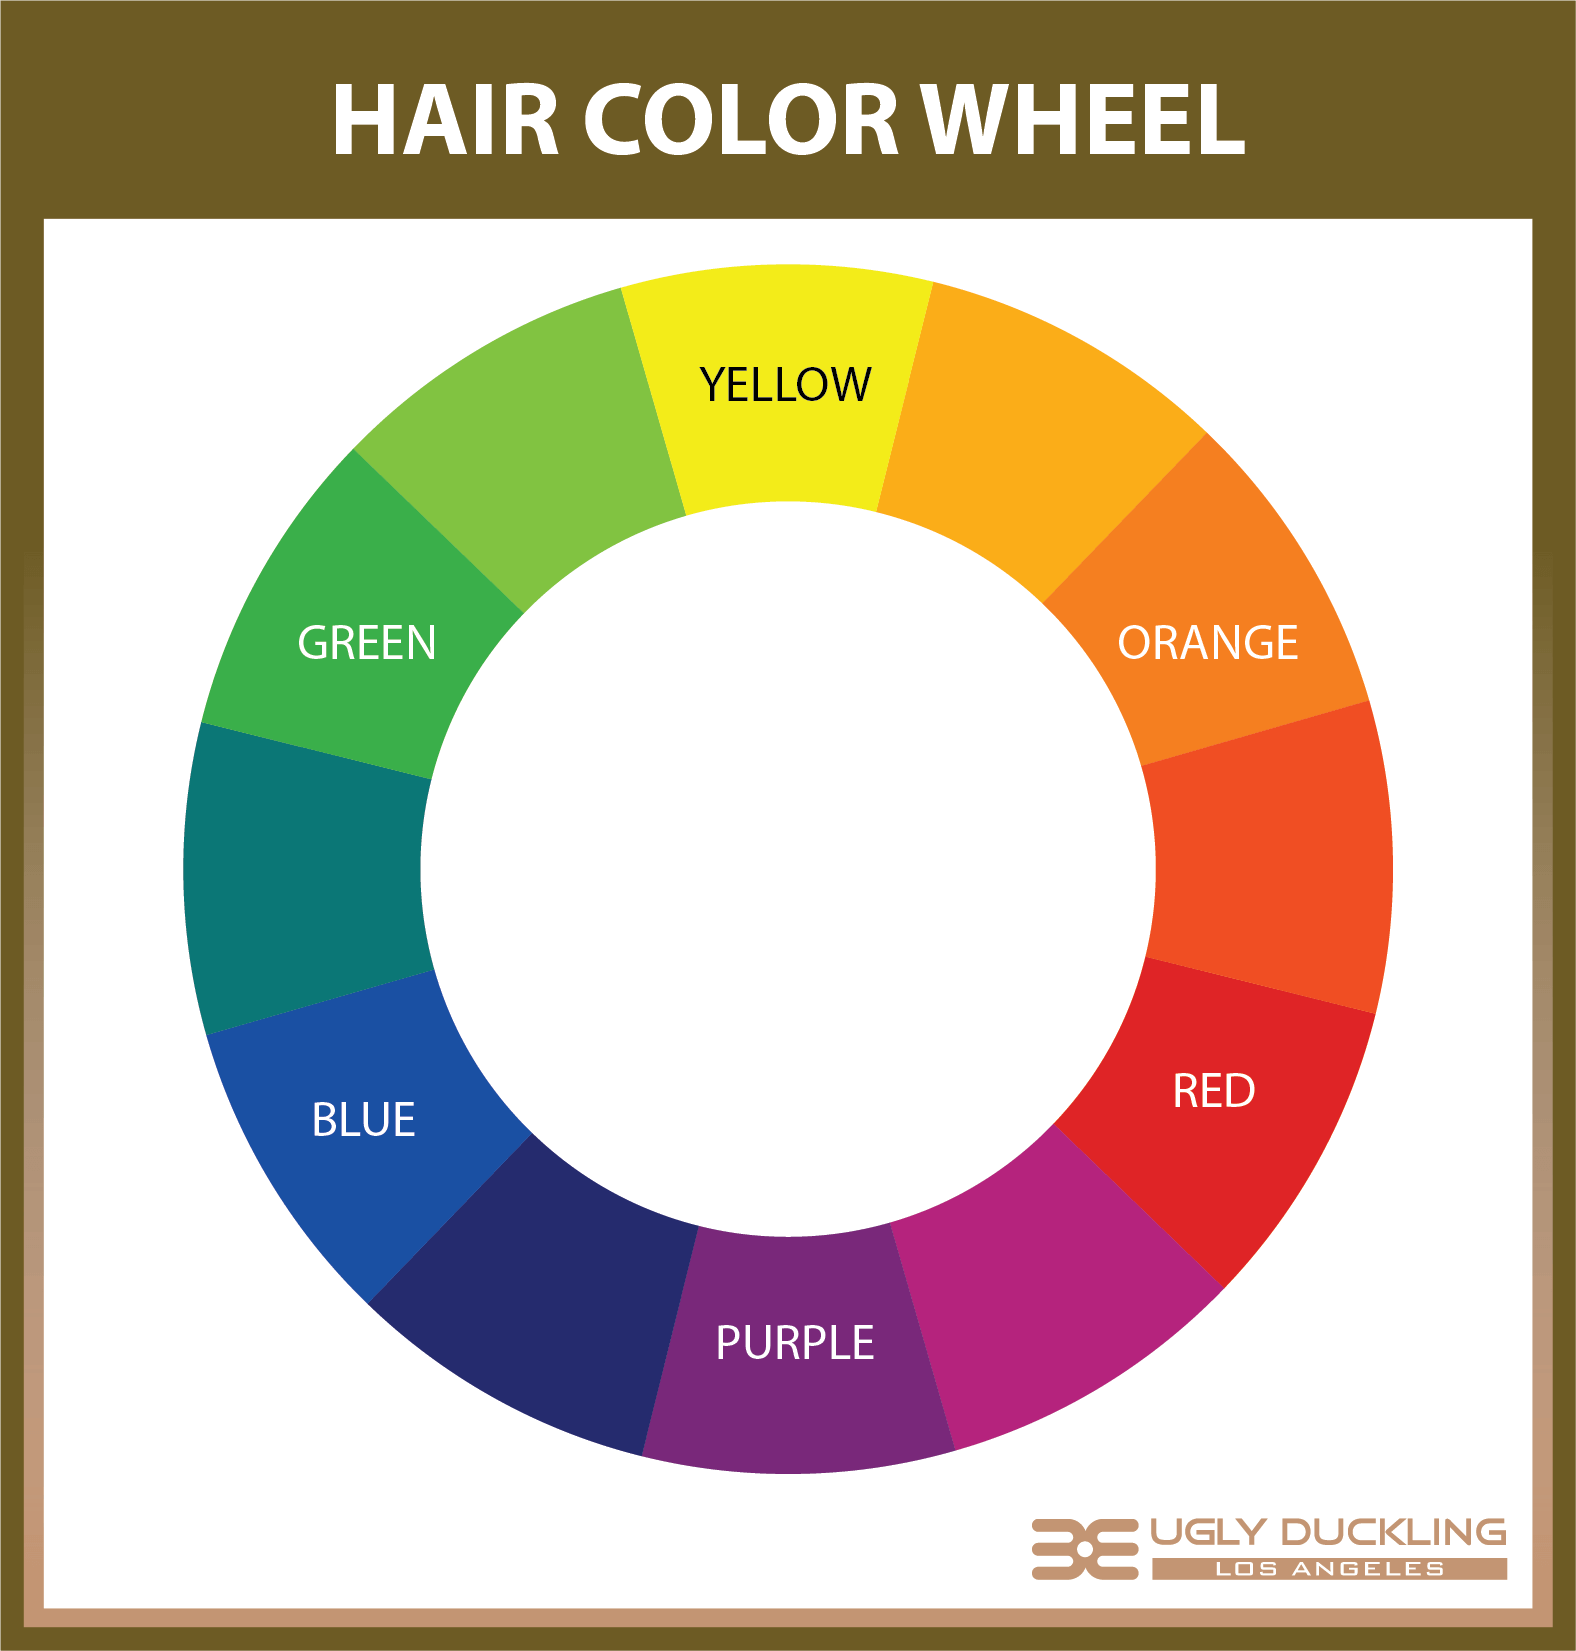 The Hair Color Wheel